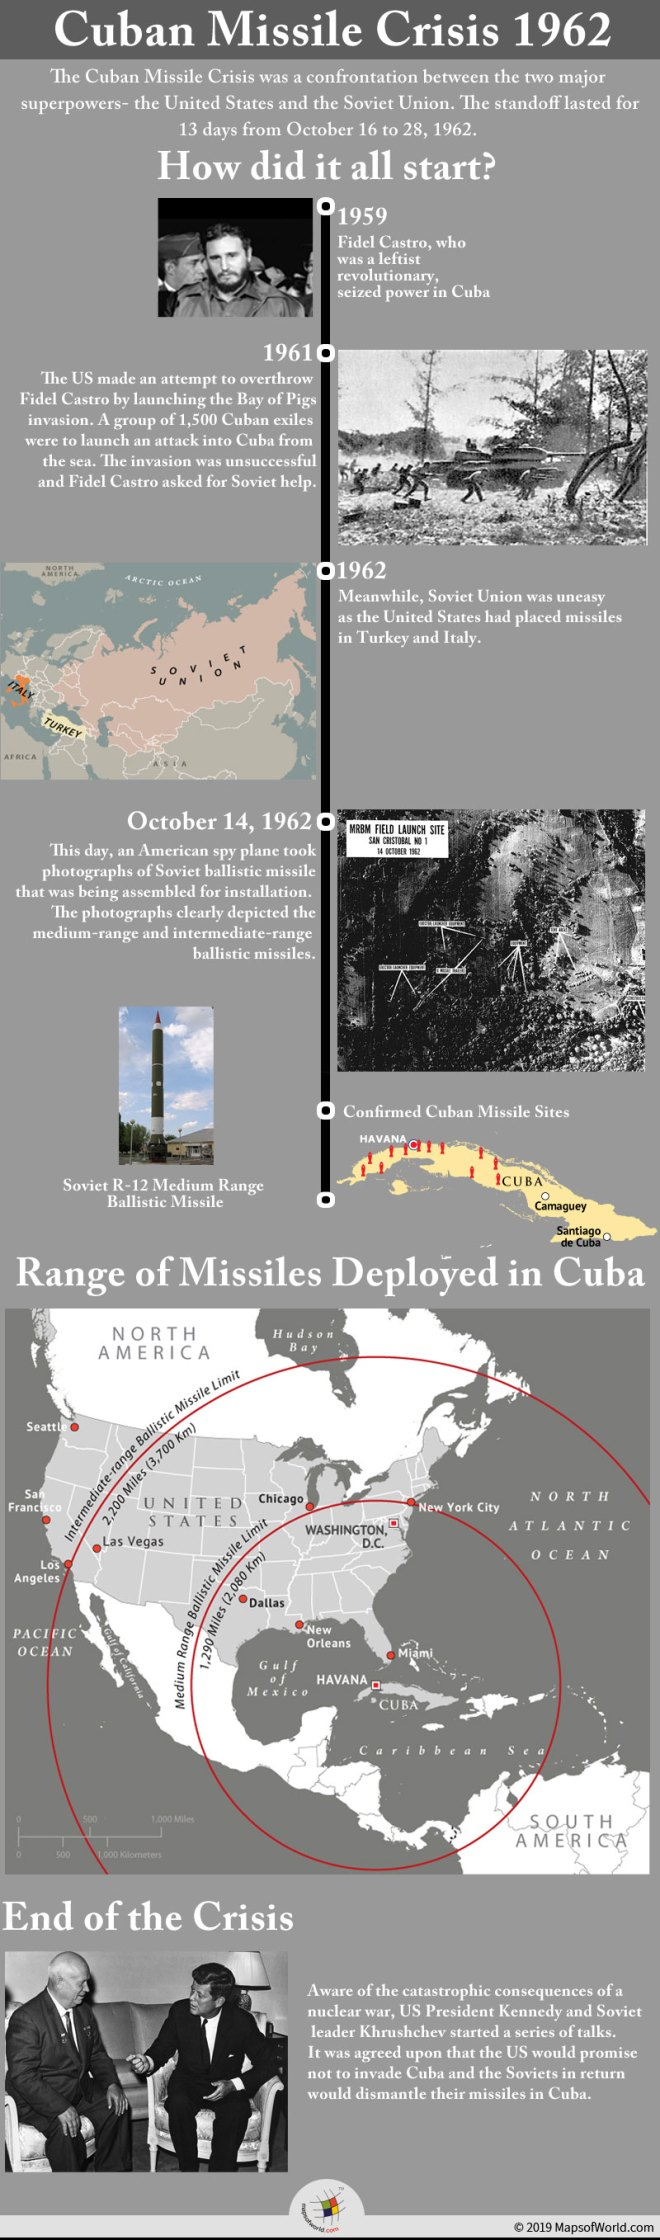 Infographic Showing Details of 1962 Cuban Missile Crisis